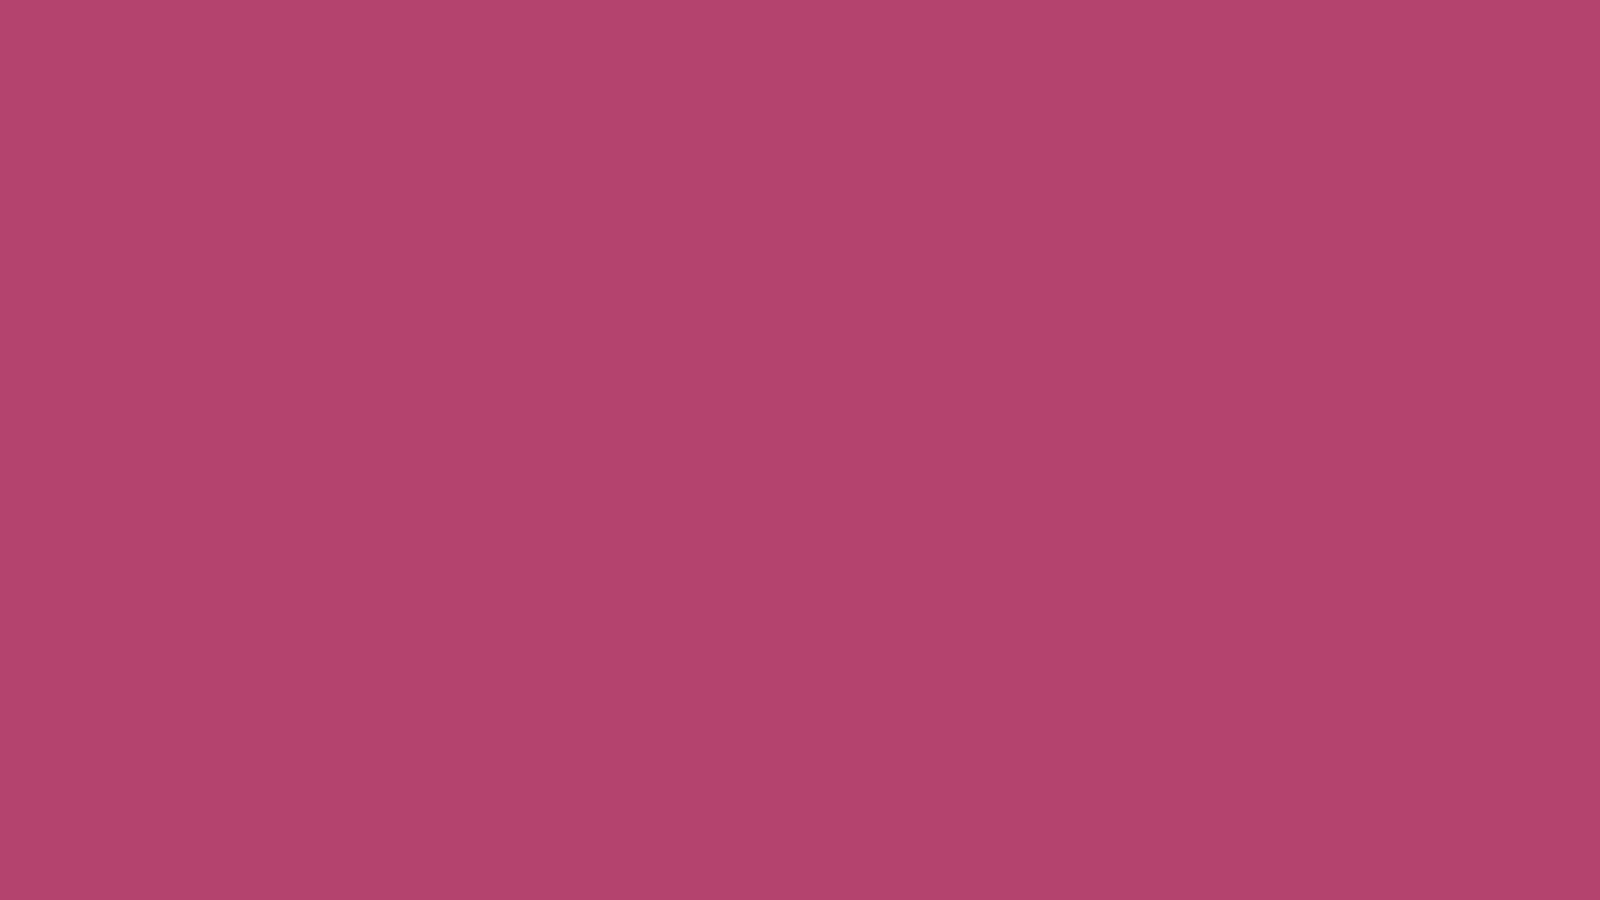 1600x900 Raspberry Rose Solid Color Background